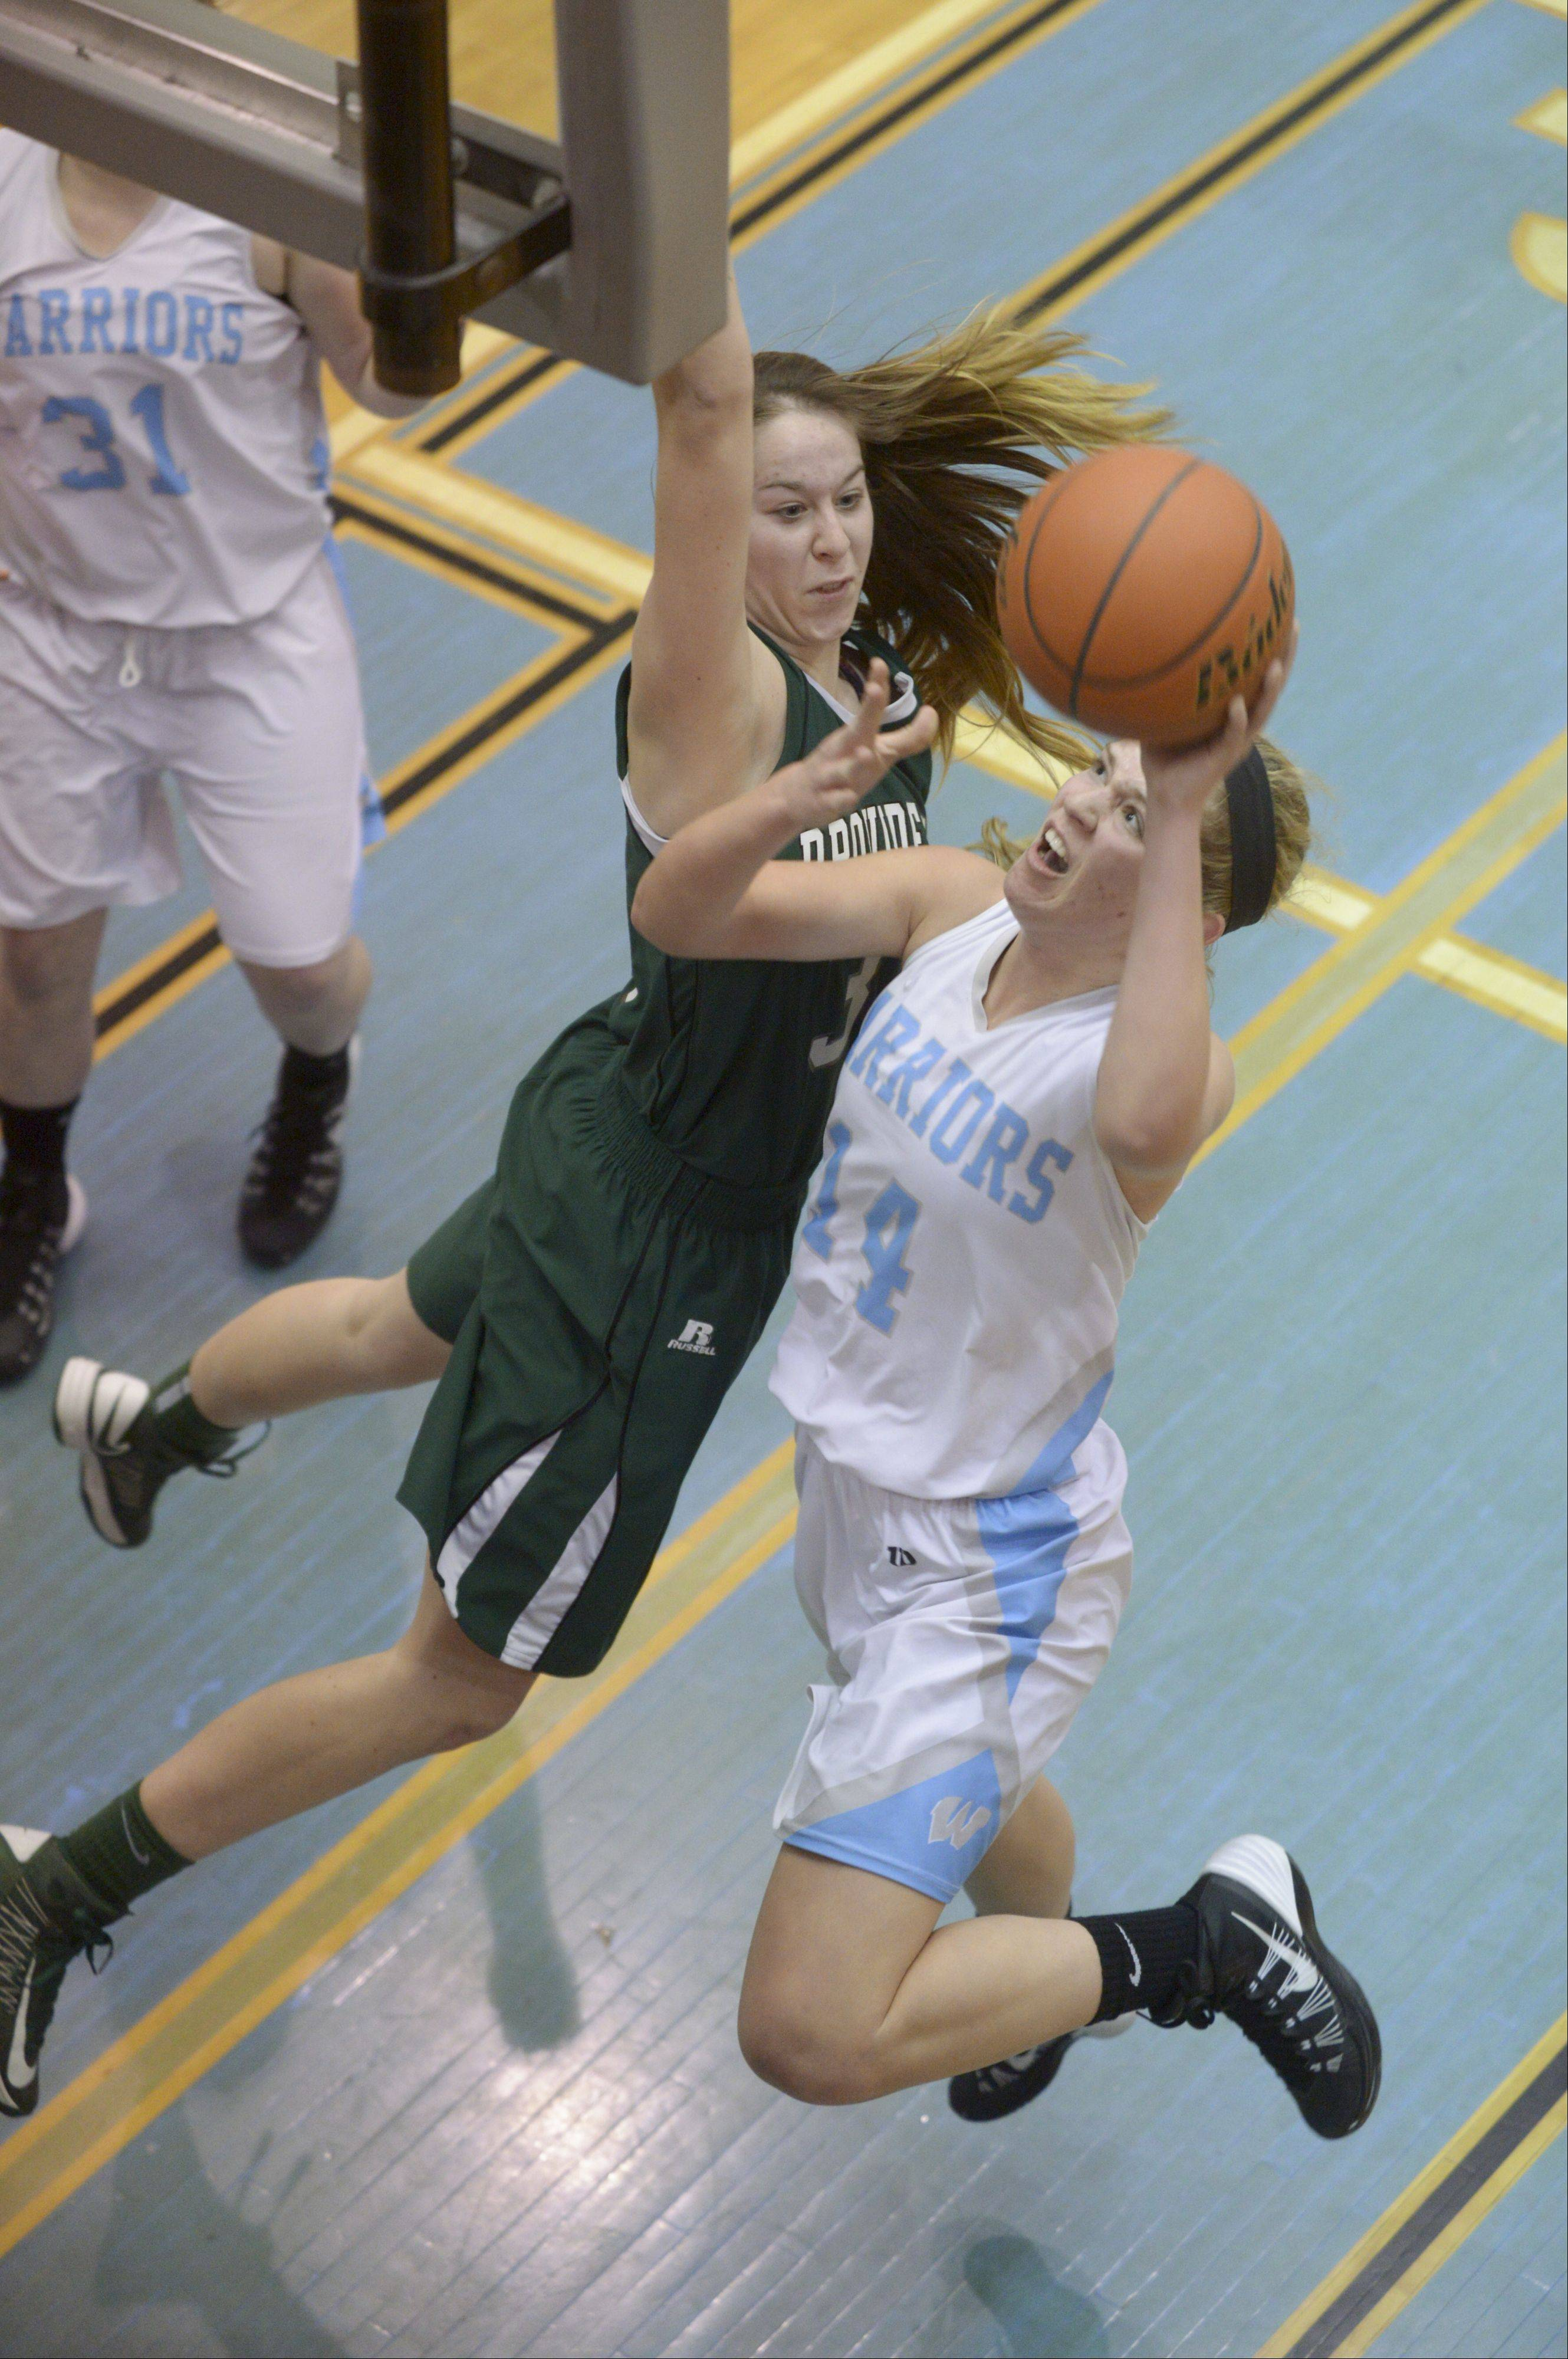 Willowbrook's Lauren Carroll lays up for a shot getting past Providence's Maeve Garvey during the McDonald's girls basketball shootout at Willowbrook High School.